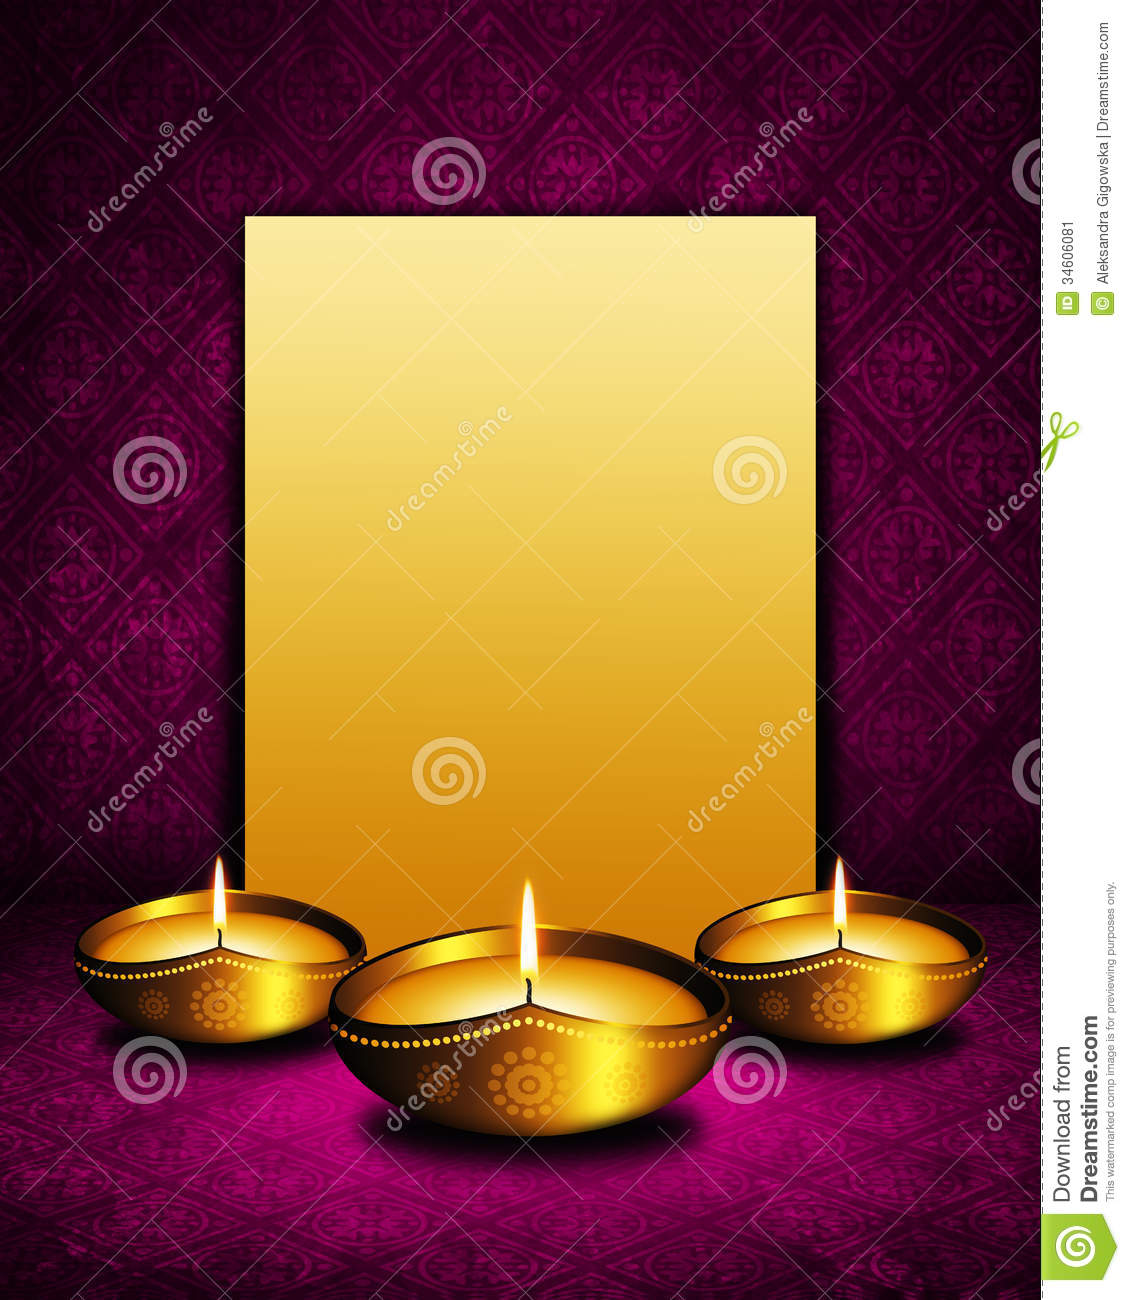 Oil Lamp With Place For Diwali Greetings Over Dark Background Stock